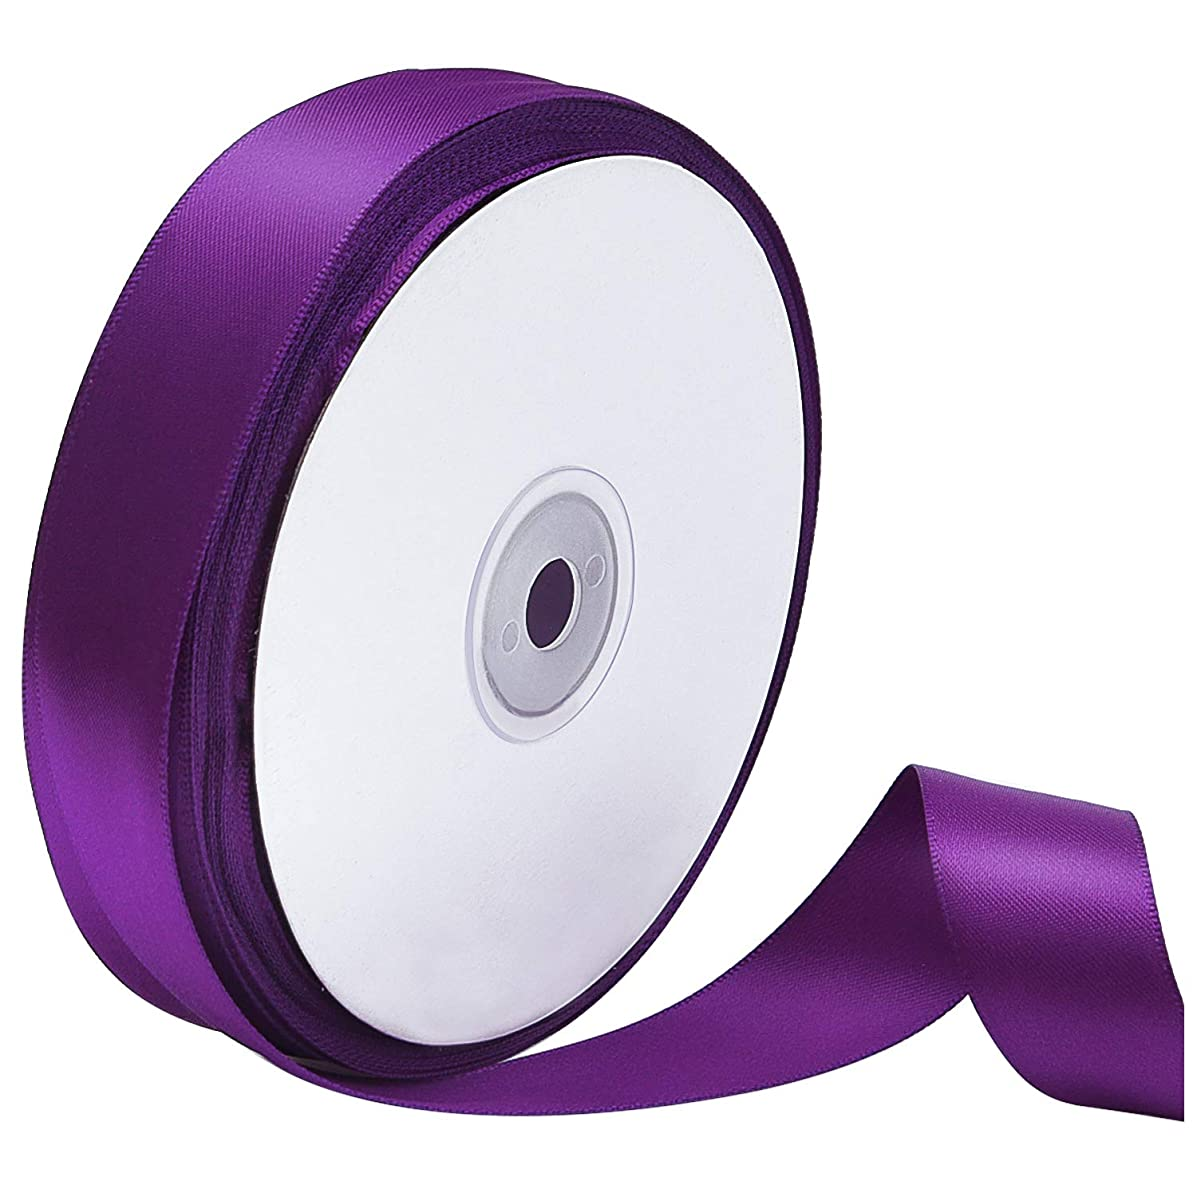 Livder Double Face Purple Satin Ribbon, 1 inch Wide 50 Yard Length (Purple)